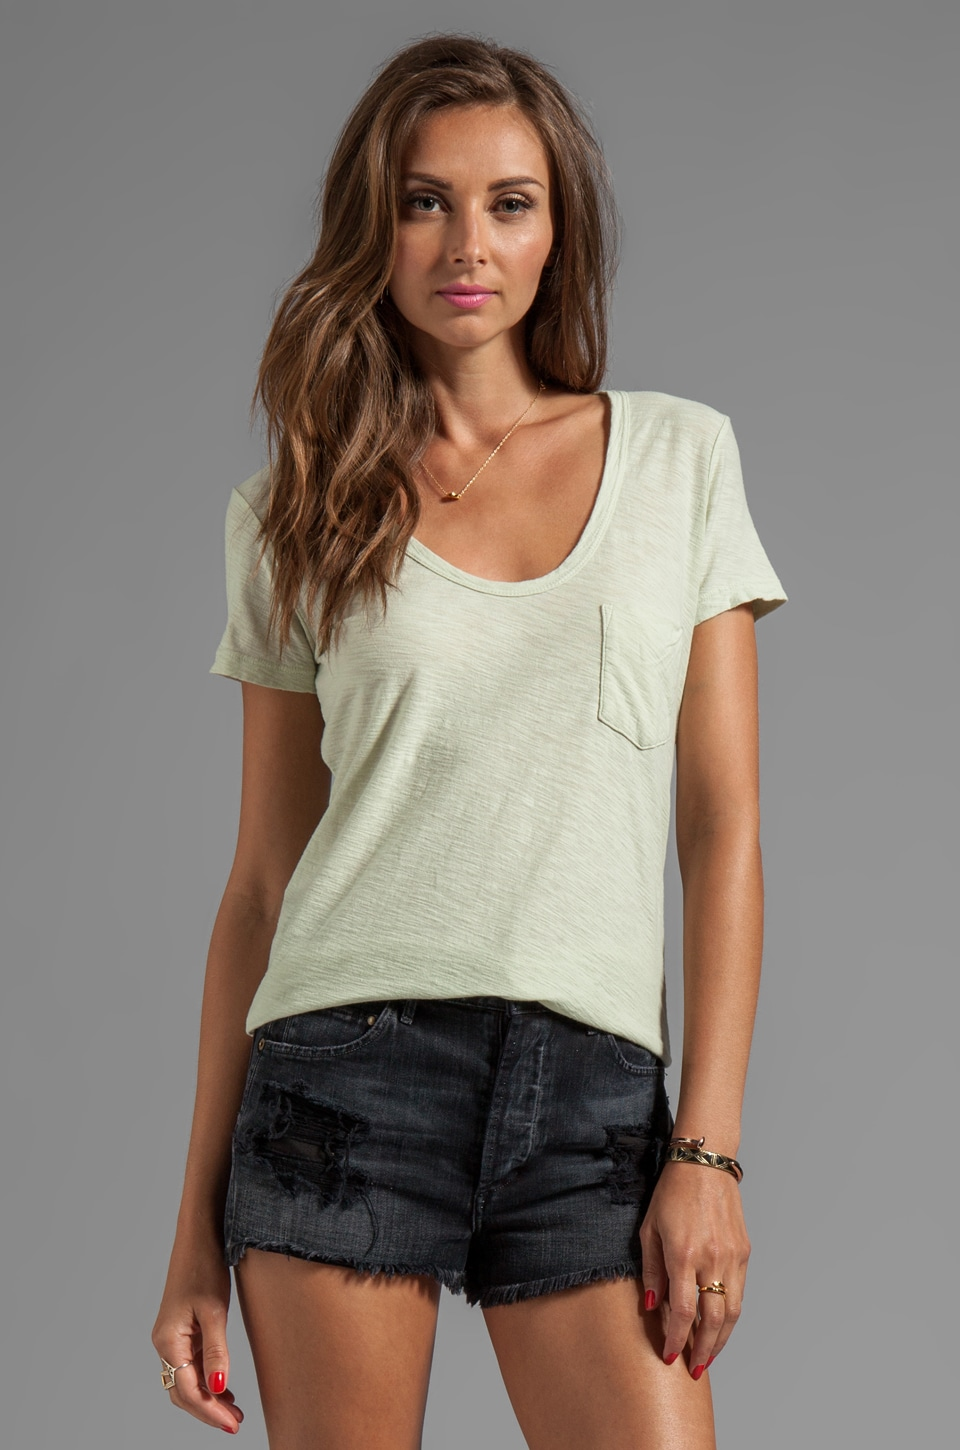 James Perse Sheer Slub Boyfriend Tee in Stem